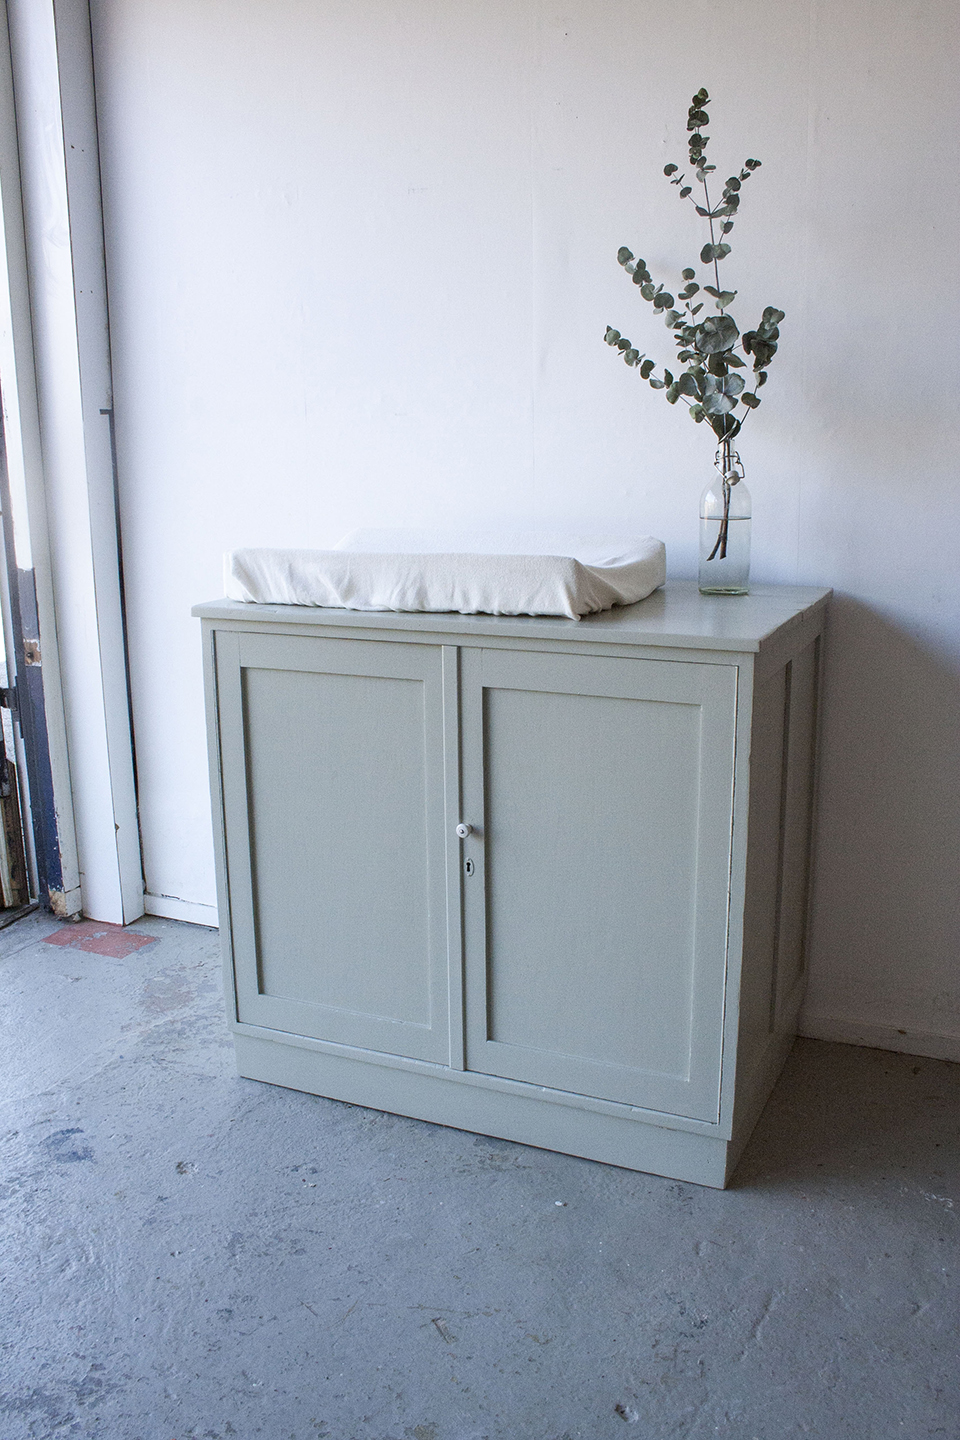 French grey blokcommode - Firmazoethout_2.jpg